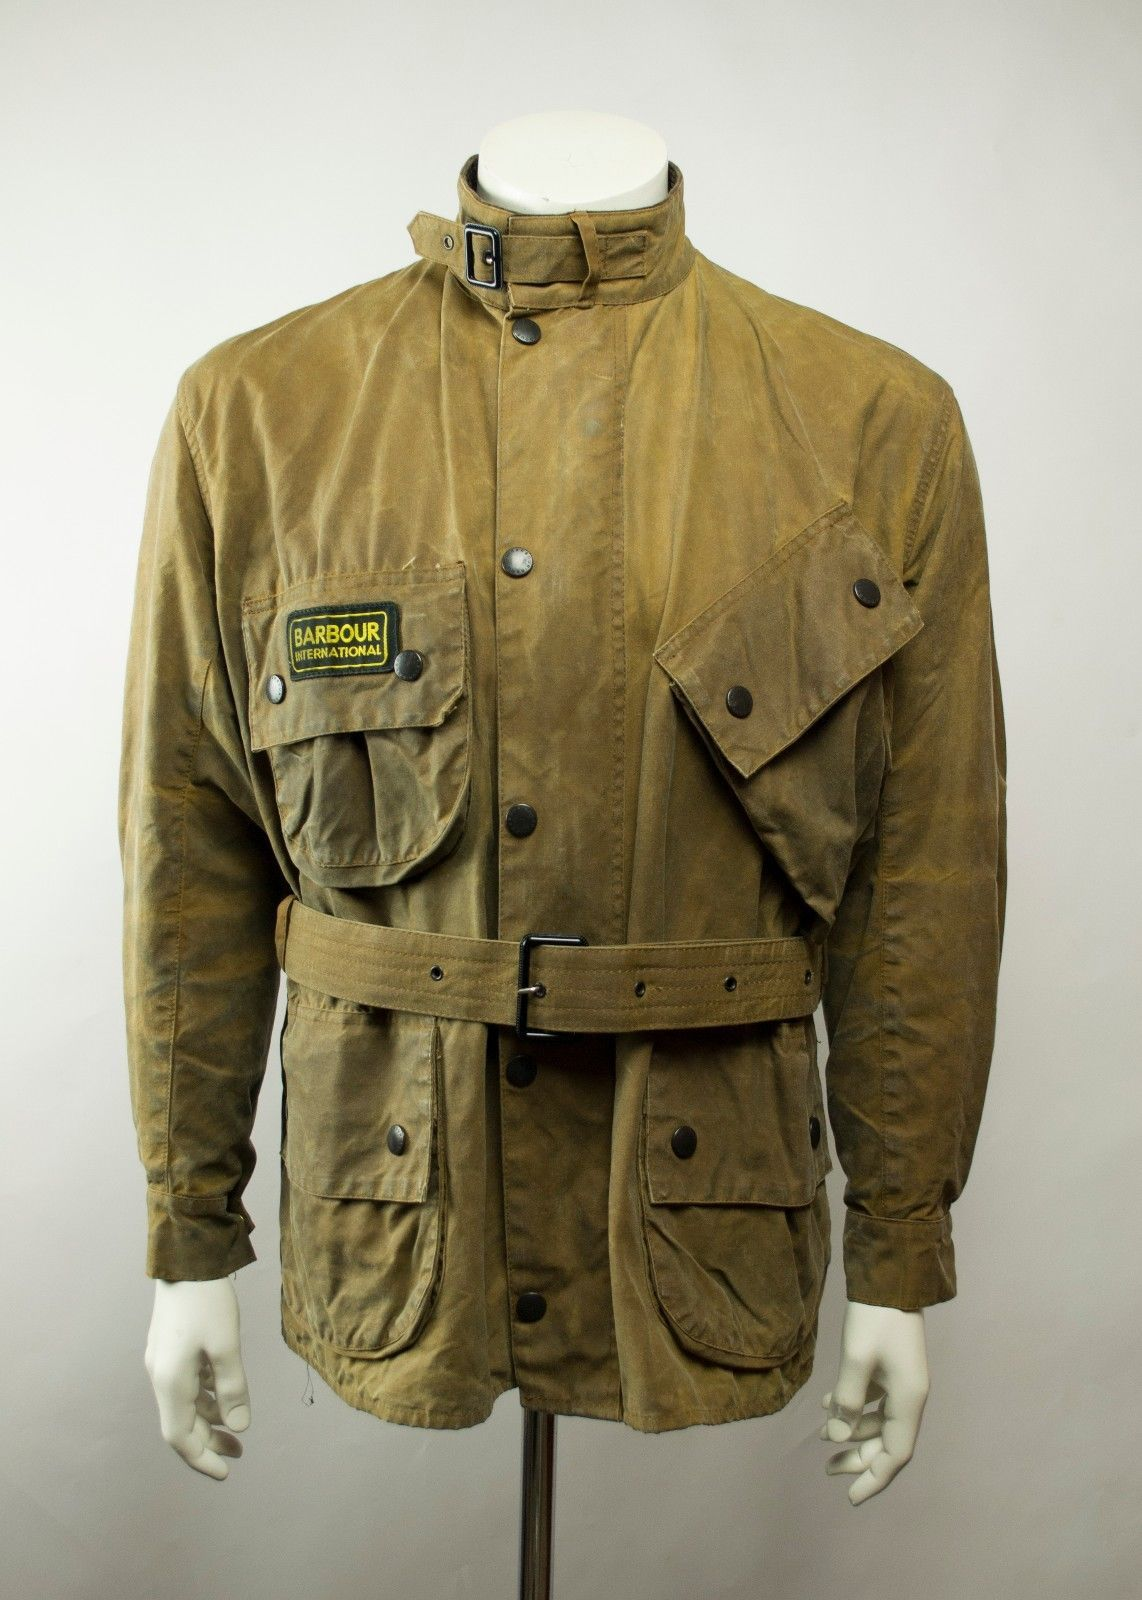 0ffe03ebe Rare Barbour A10 International Waxed Motorcycle Jacket Size C44 / 112CM |  eBay